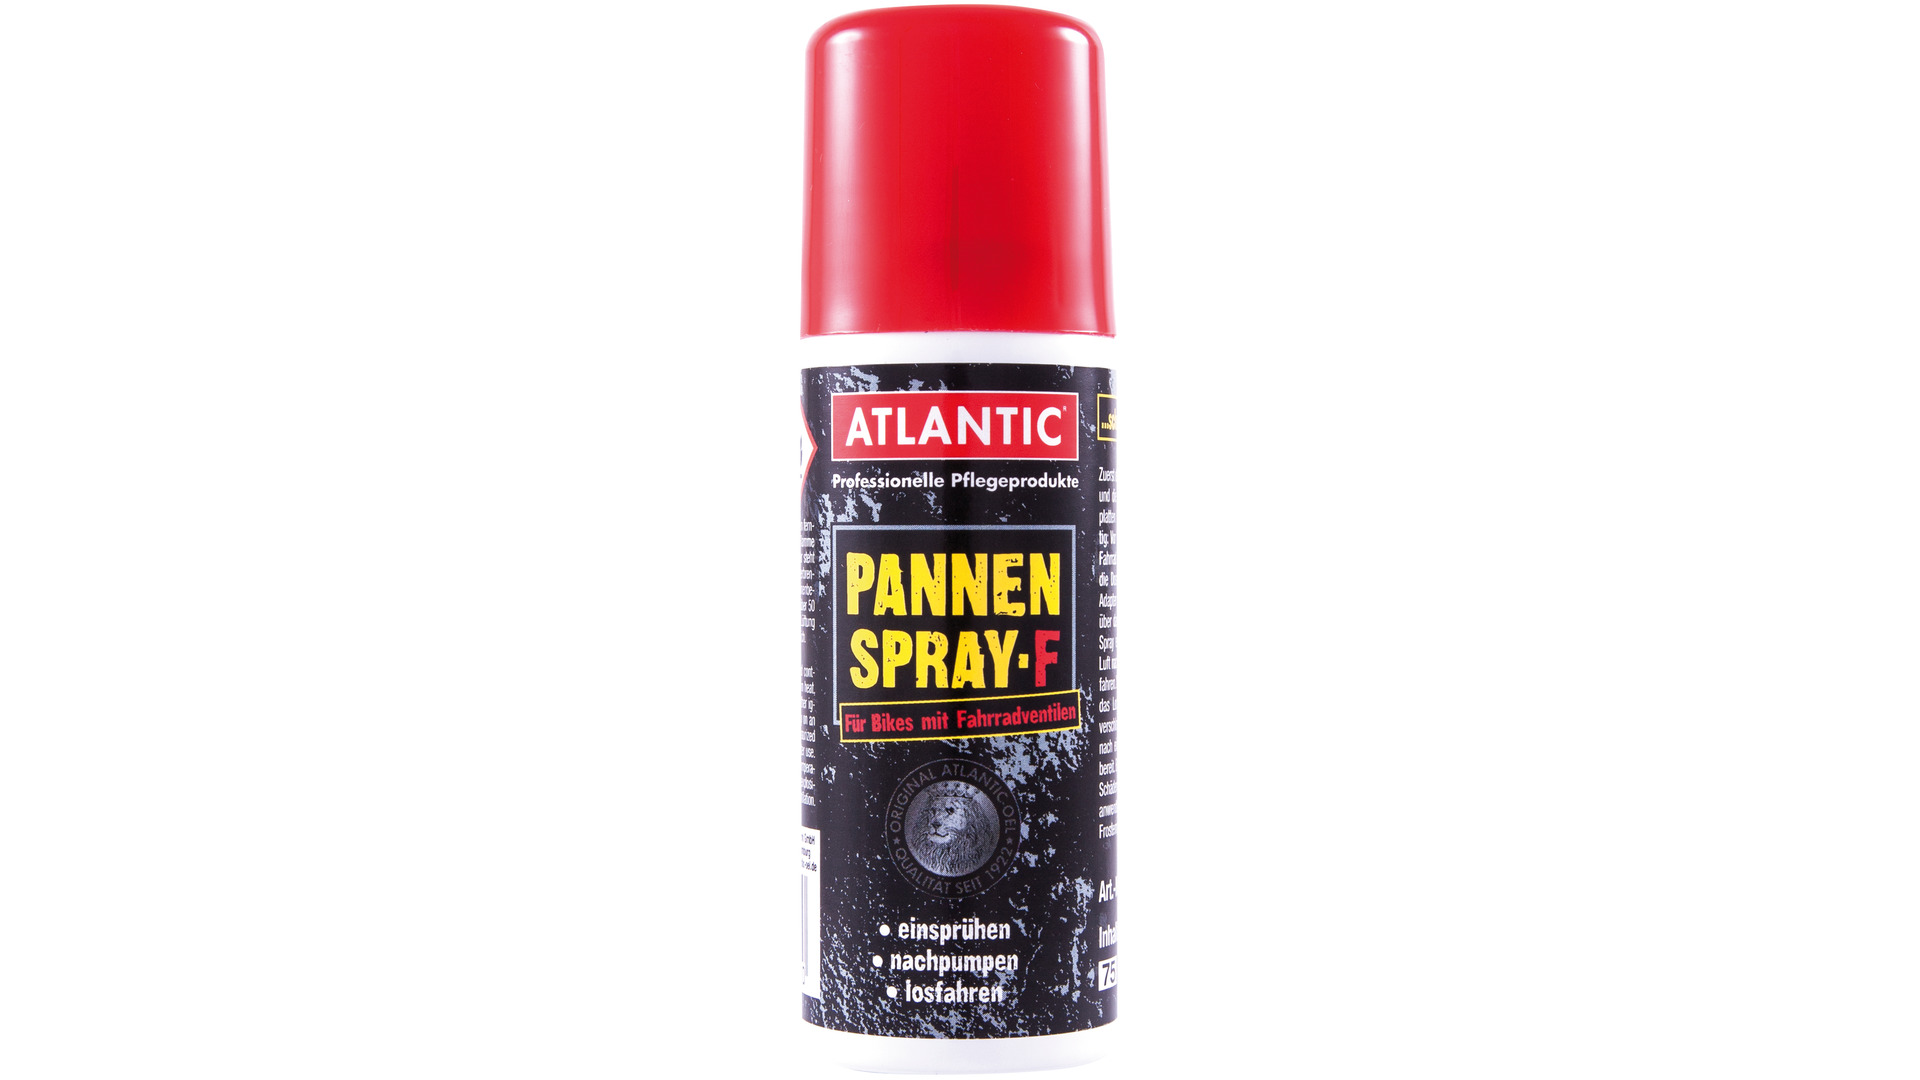 Atlantic Bandendichter Spray F tbv. normaal Ventiel 50ml